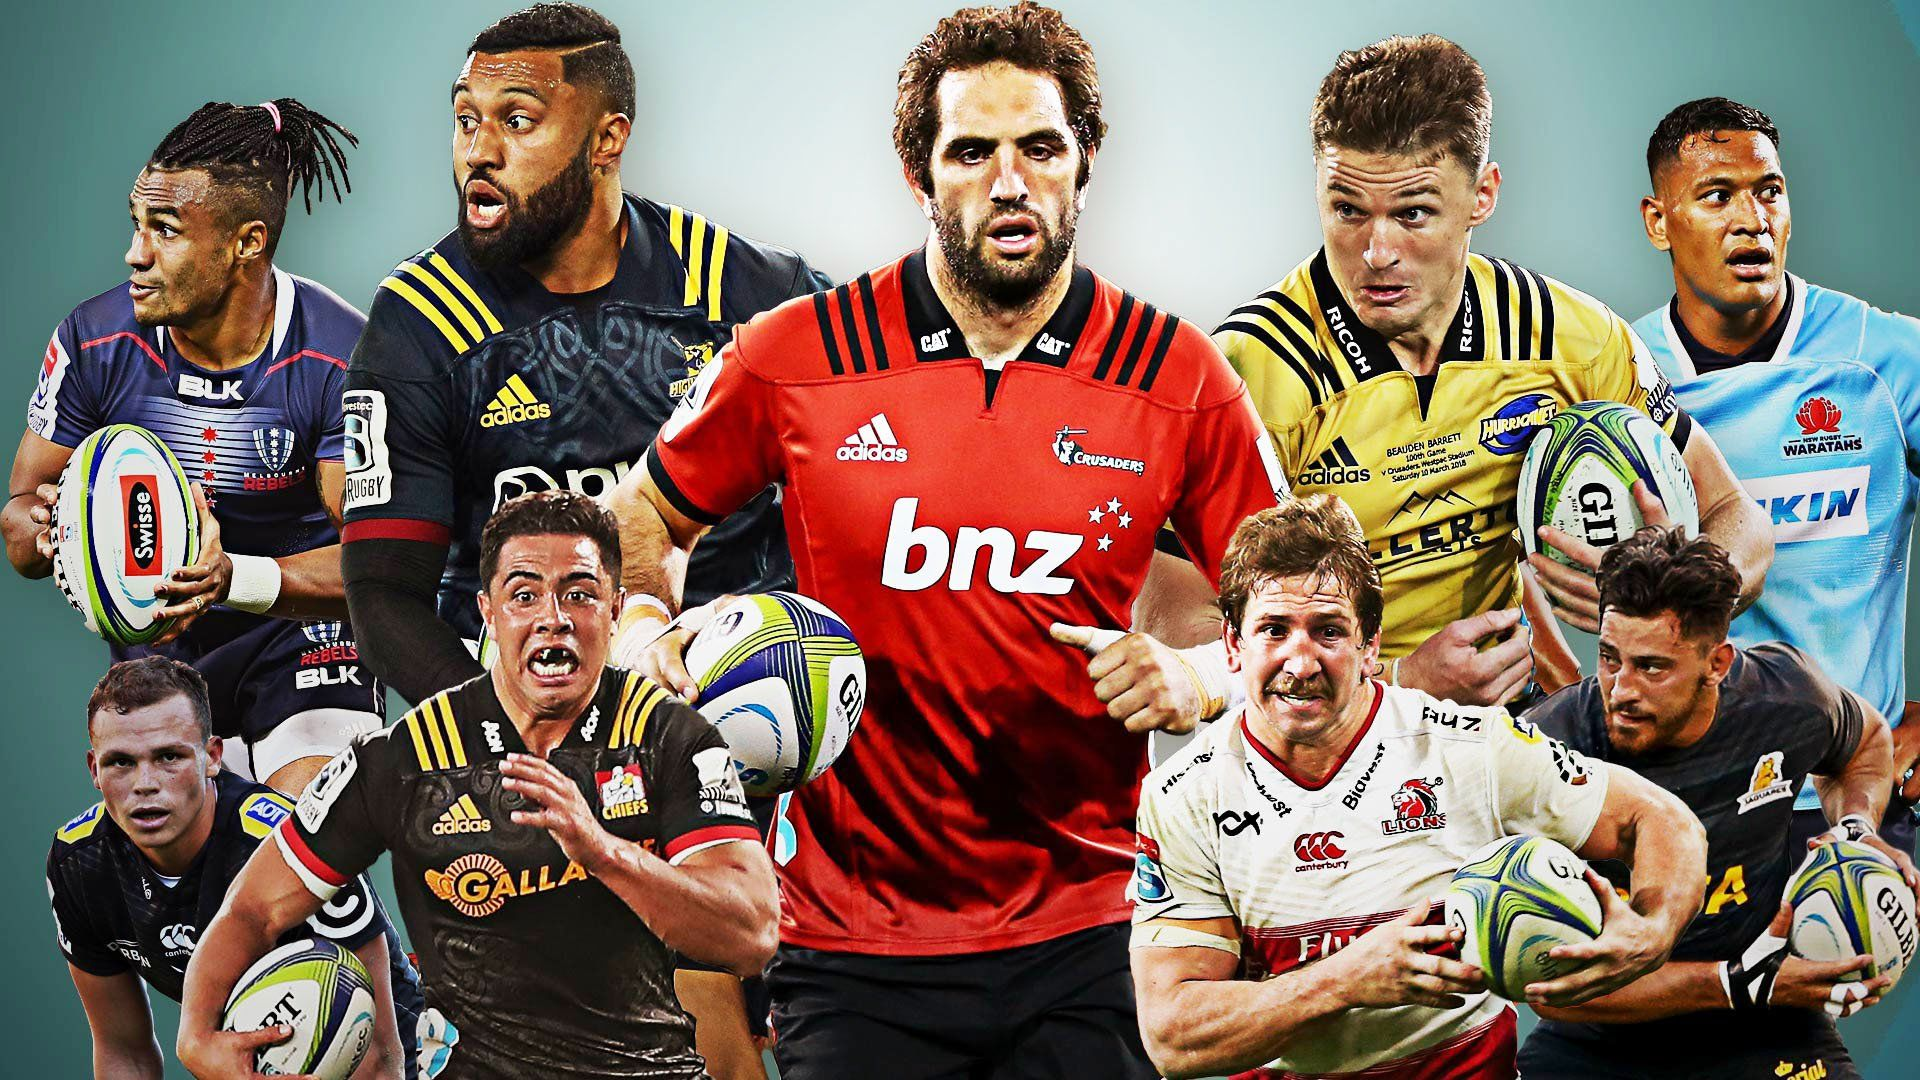 You can easily Watch 2020 Super Rugby live stream online